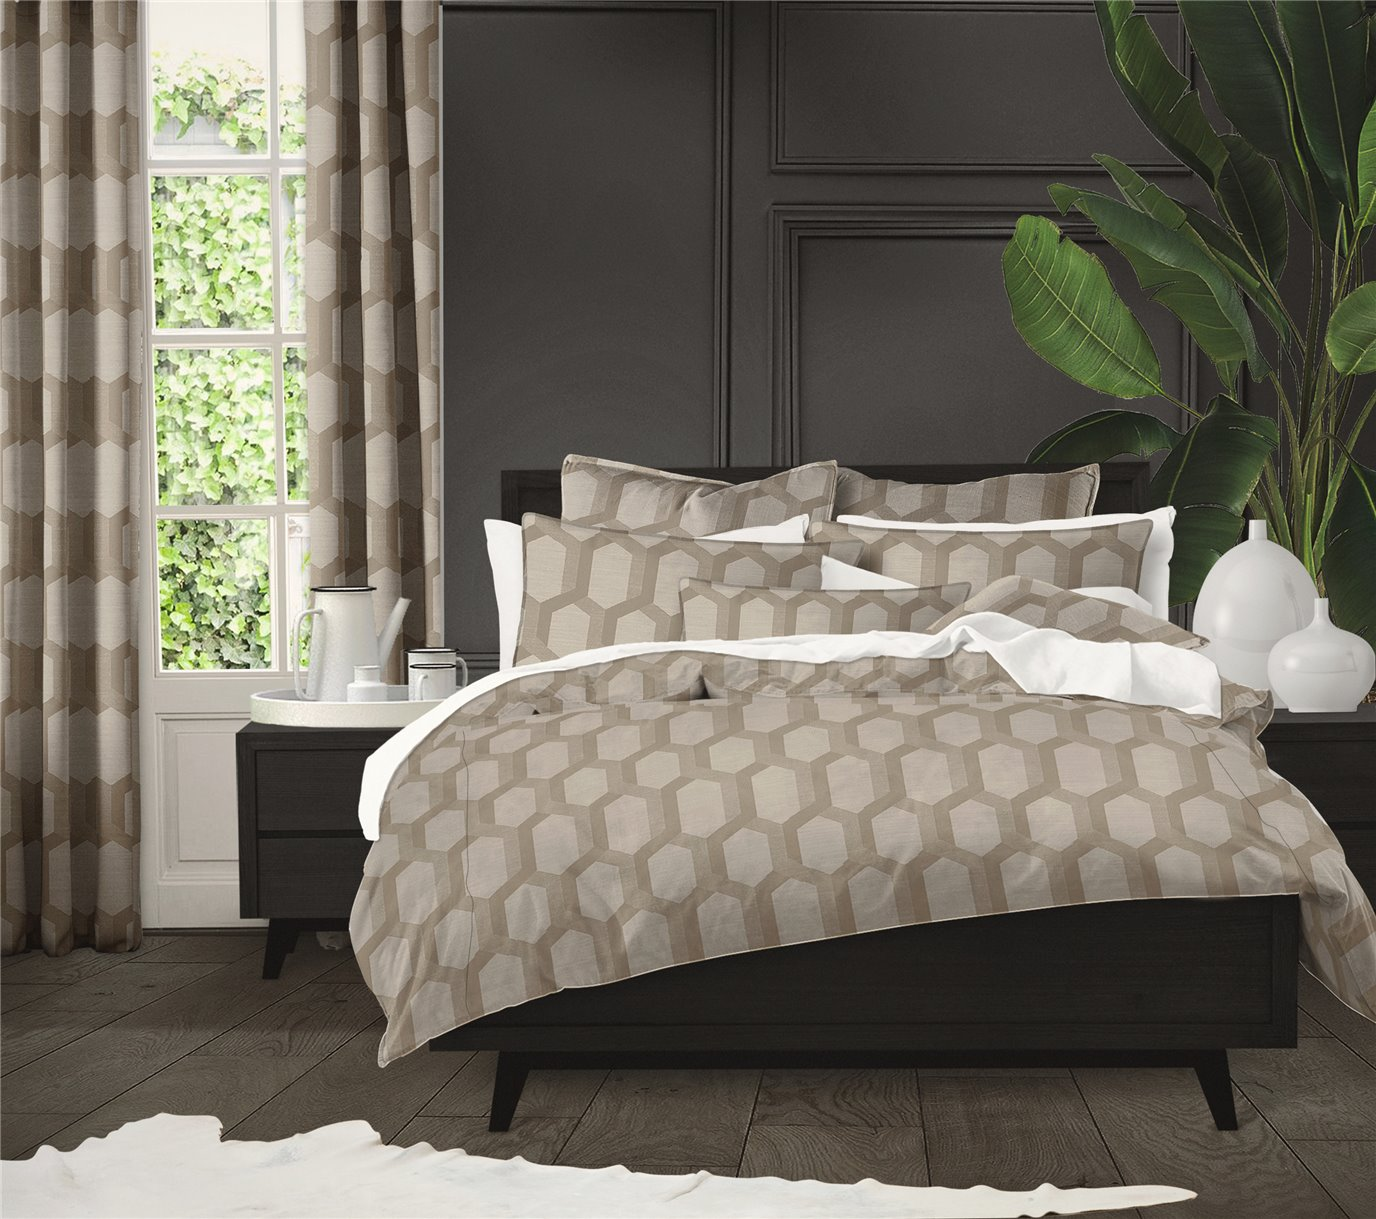 Maidstone Taupe Duvet Cover Set - Twin